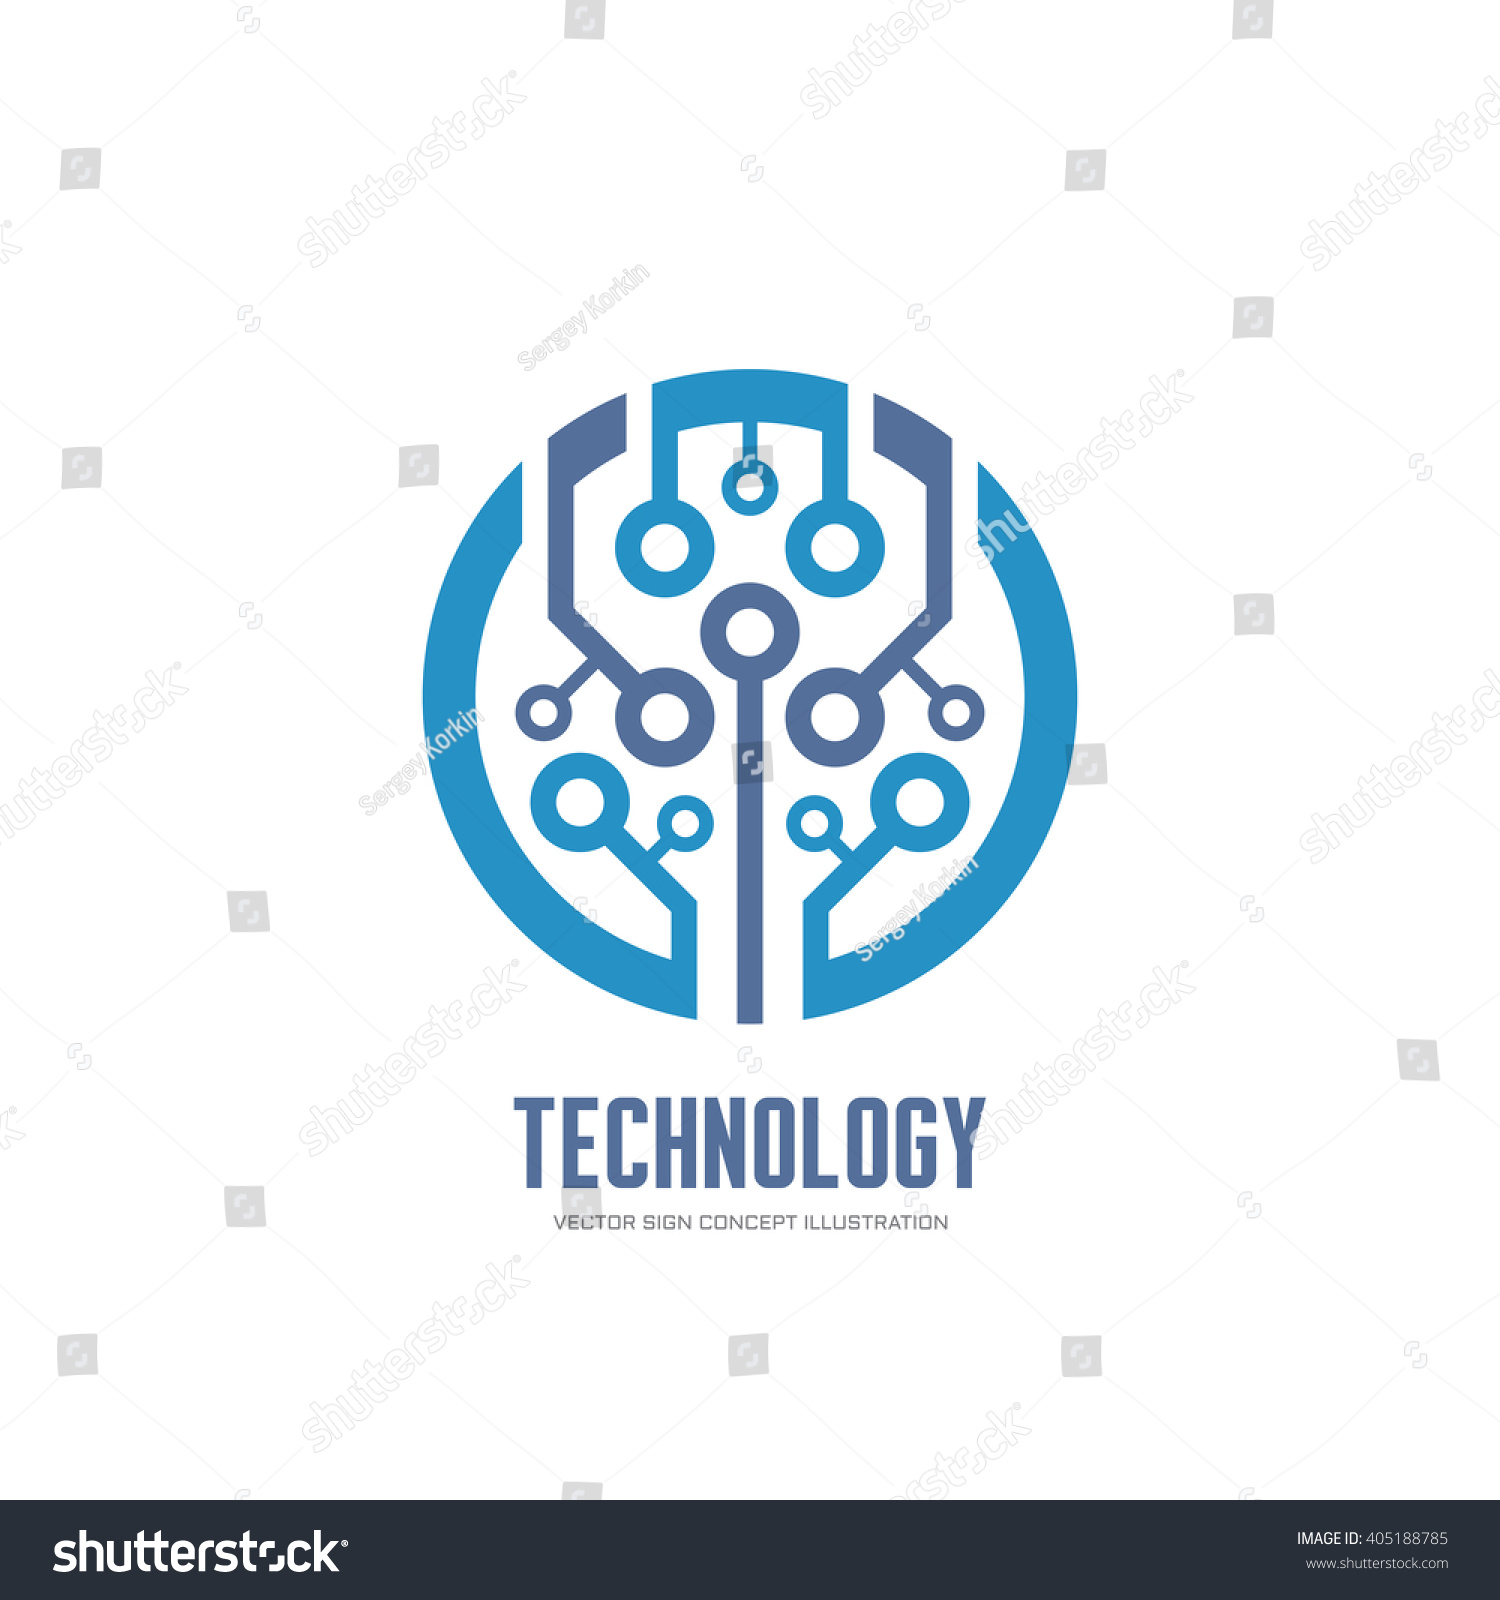 Technology Vector Logo Corporate Identity Abstract Stock